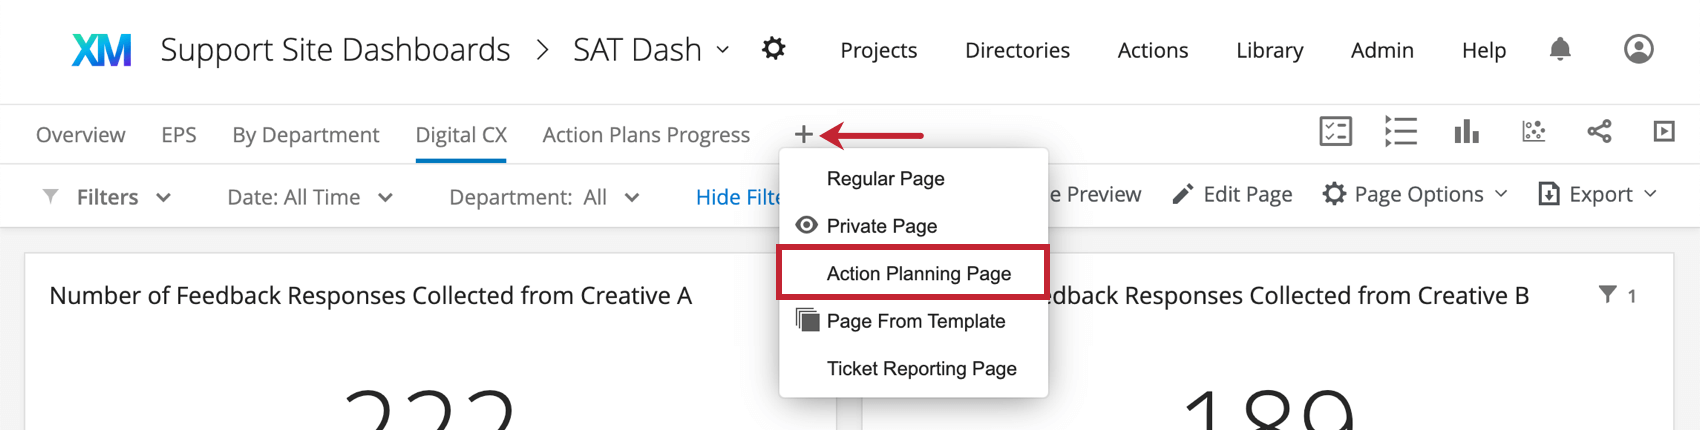 Using new page button, top or left of dashboard. One of the options is action planning page.